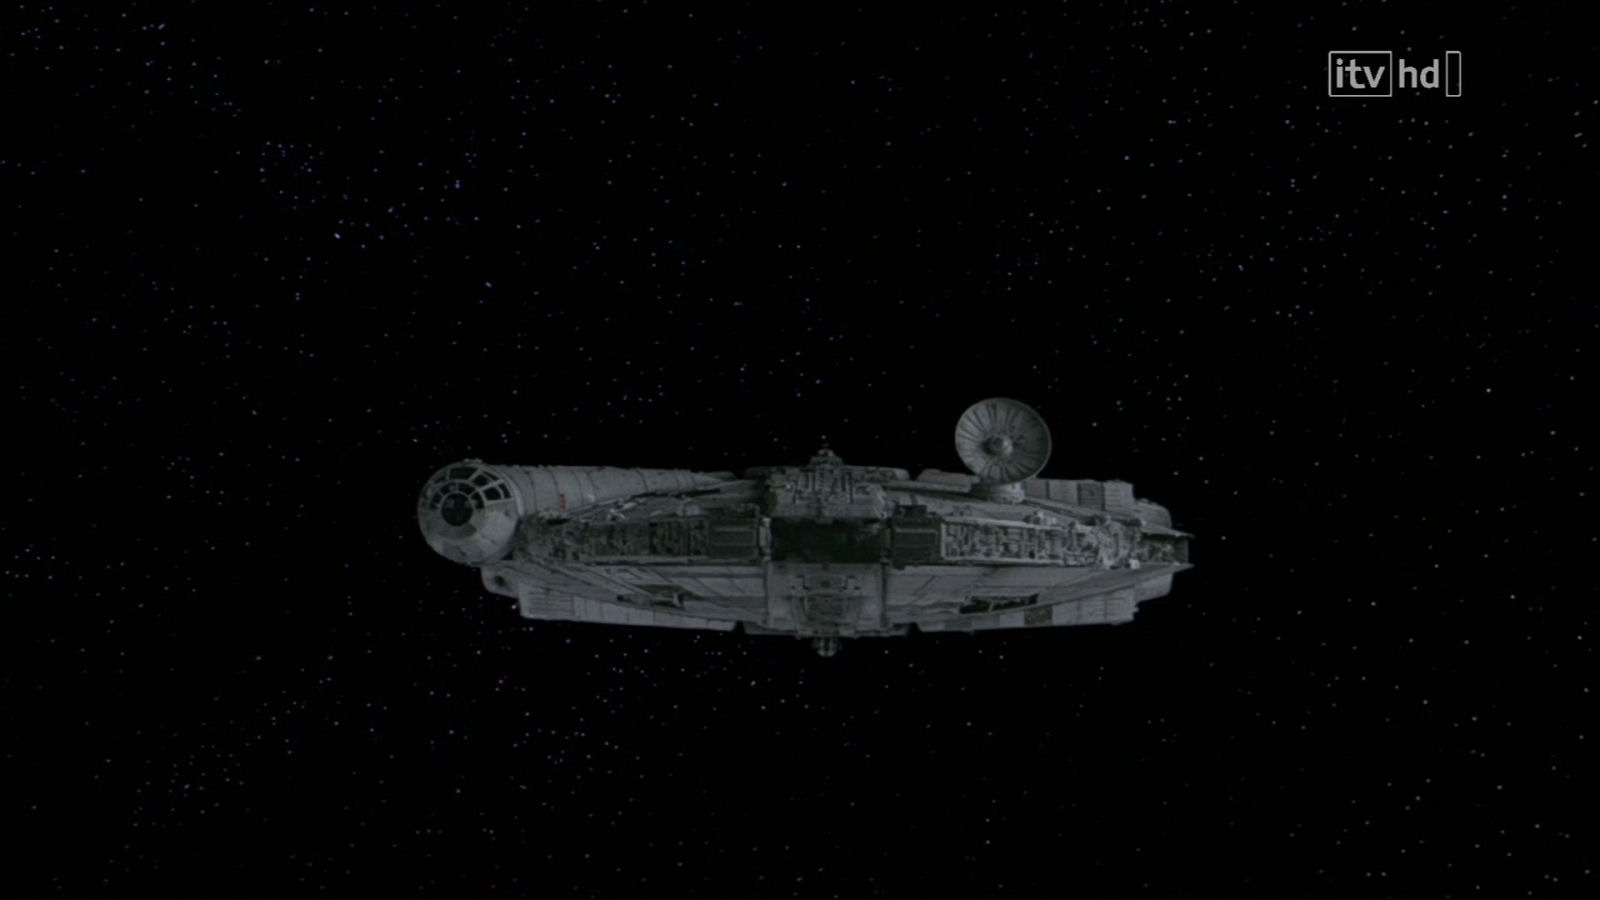 Build a Freesat / Freeview HTPC: Star Wars: A New Hope - ITV HD